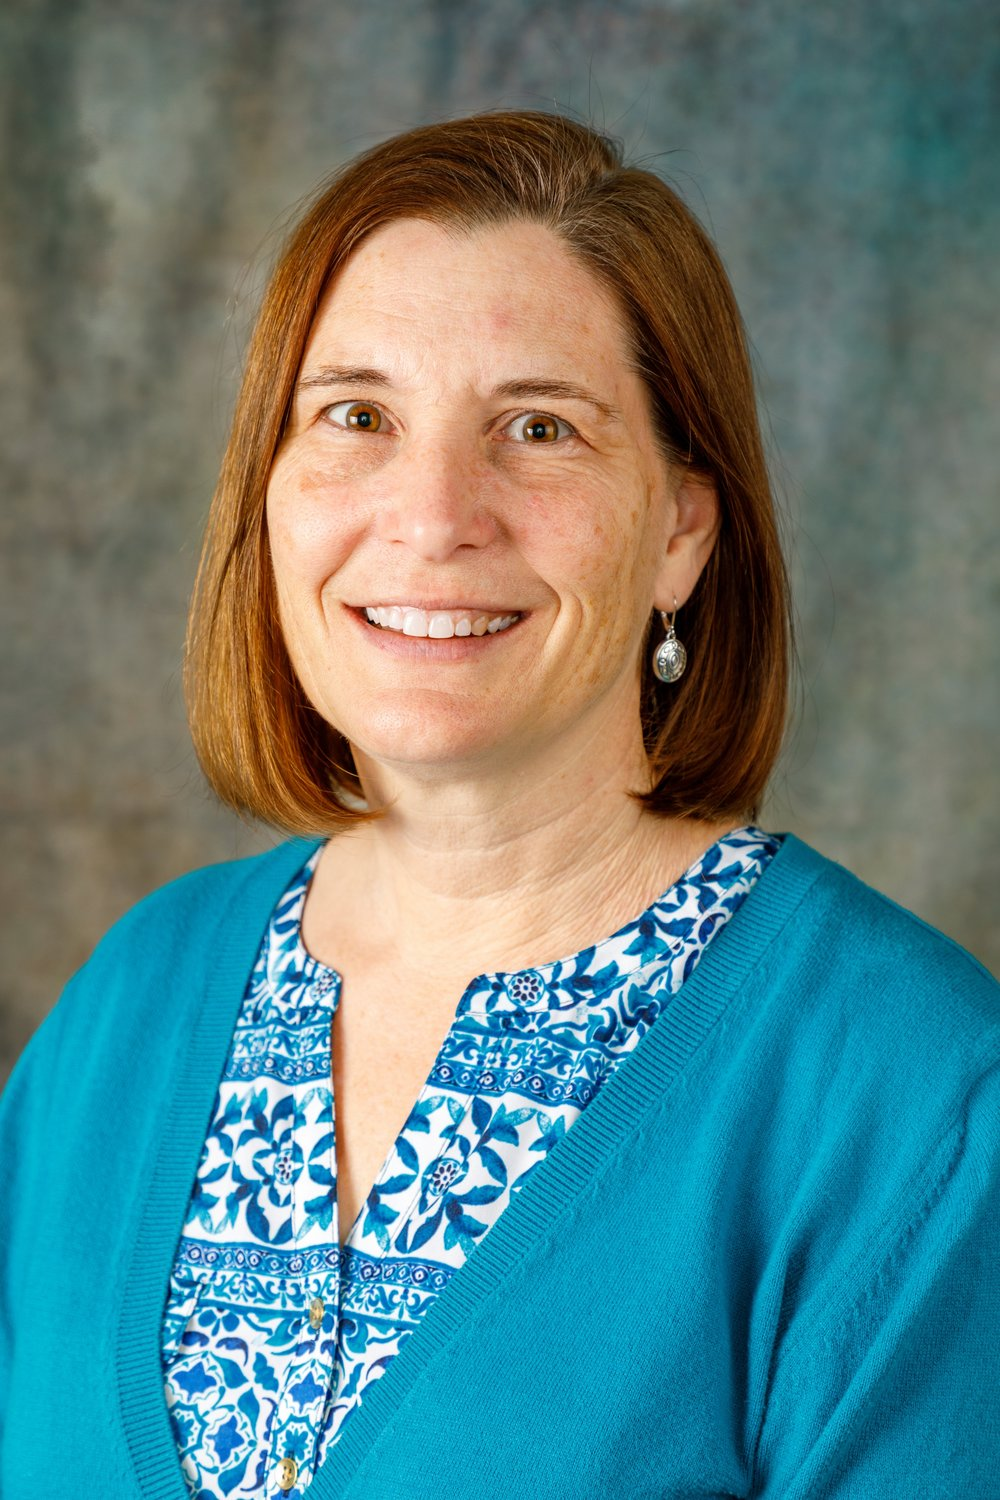 Ms Colleen Belknapp   Executive Director    Colleen has been at Aemilian Preschool since 1987. She began by teaching in the 3 year olds for 13 years and then transitioning to the business manager to work part time when her children were young. In January of 2008 she became the Executive Director. She is passionate about high quality early childhood education and feels lucky to have found such a wonderful program. When she's not at school she and her husband enjoy cheering on her 4 children when they are playing volleyball or baseball.